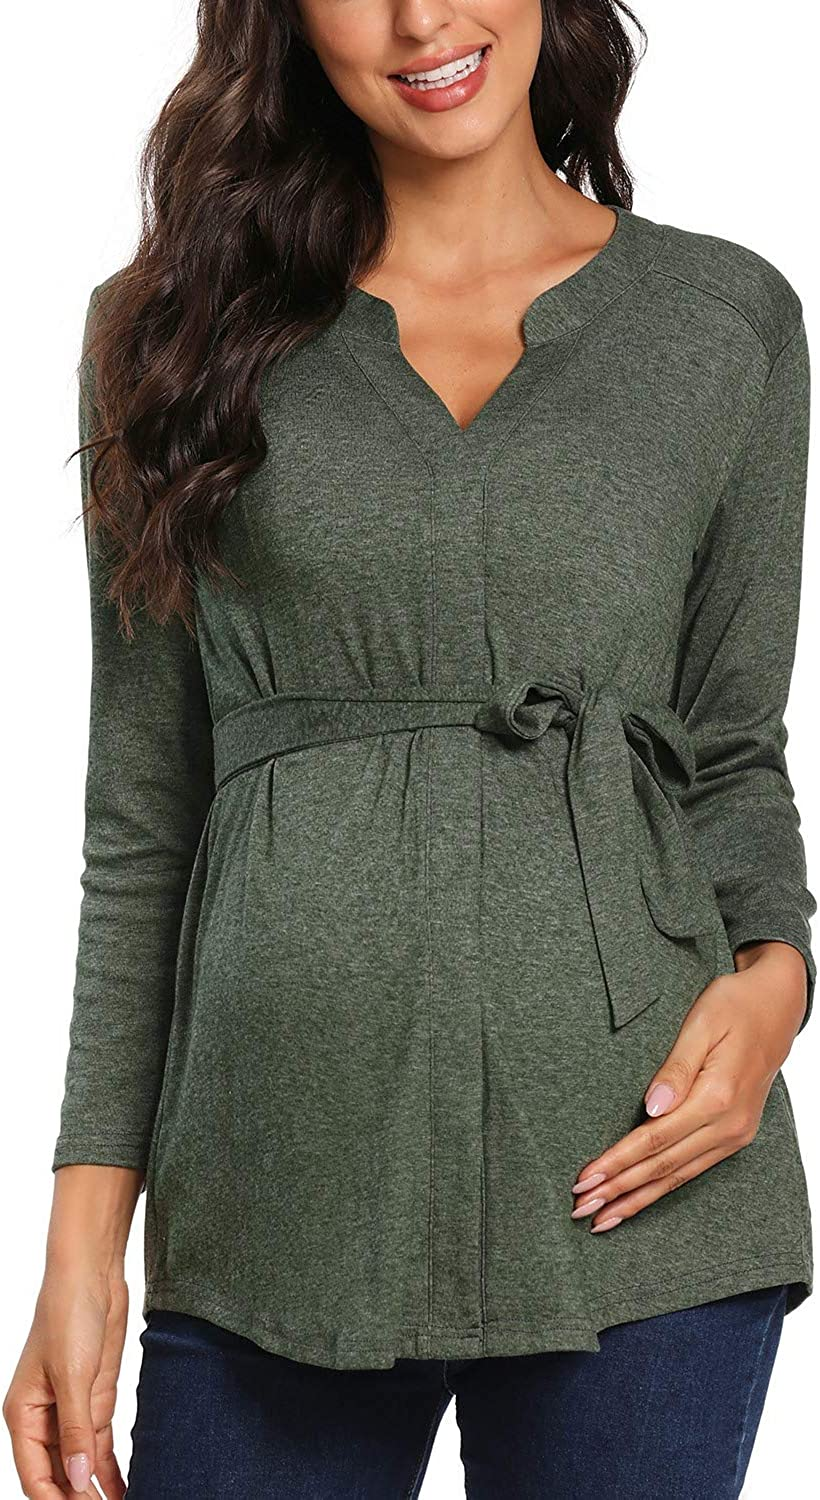 Glampunch Women/'s Maternity Tops V Neck Cap Sleeve/&Long Sleeve Tunic Tops Casual Pregnancy Blouse Shirts